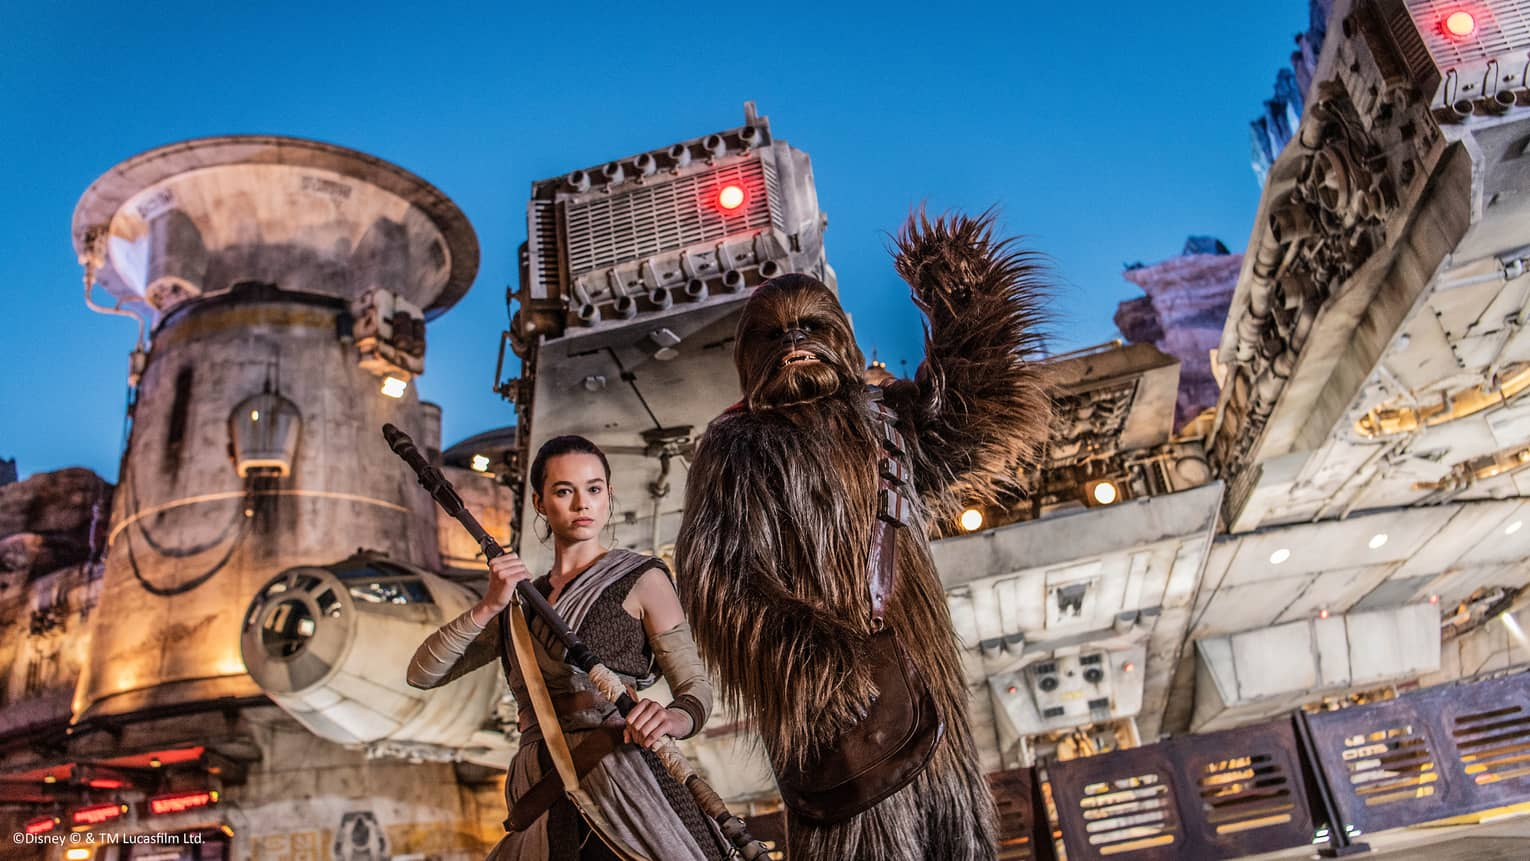 Actors dressed as Rey and Chewbacca greet visitors at Star Wars Galaxy's Edge